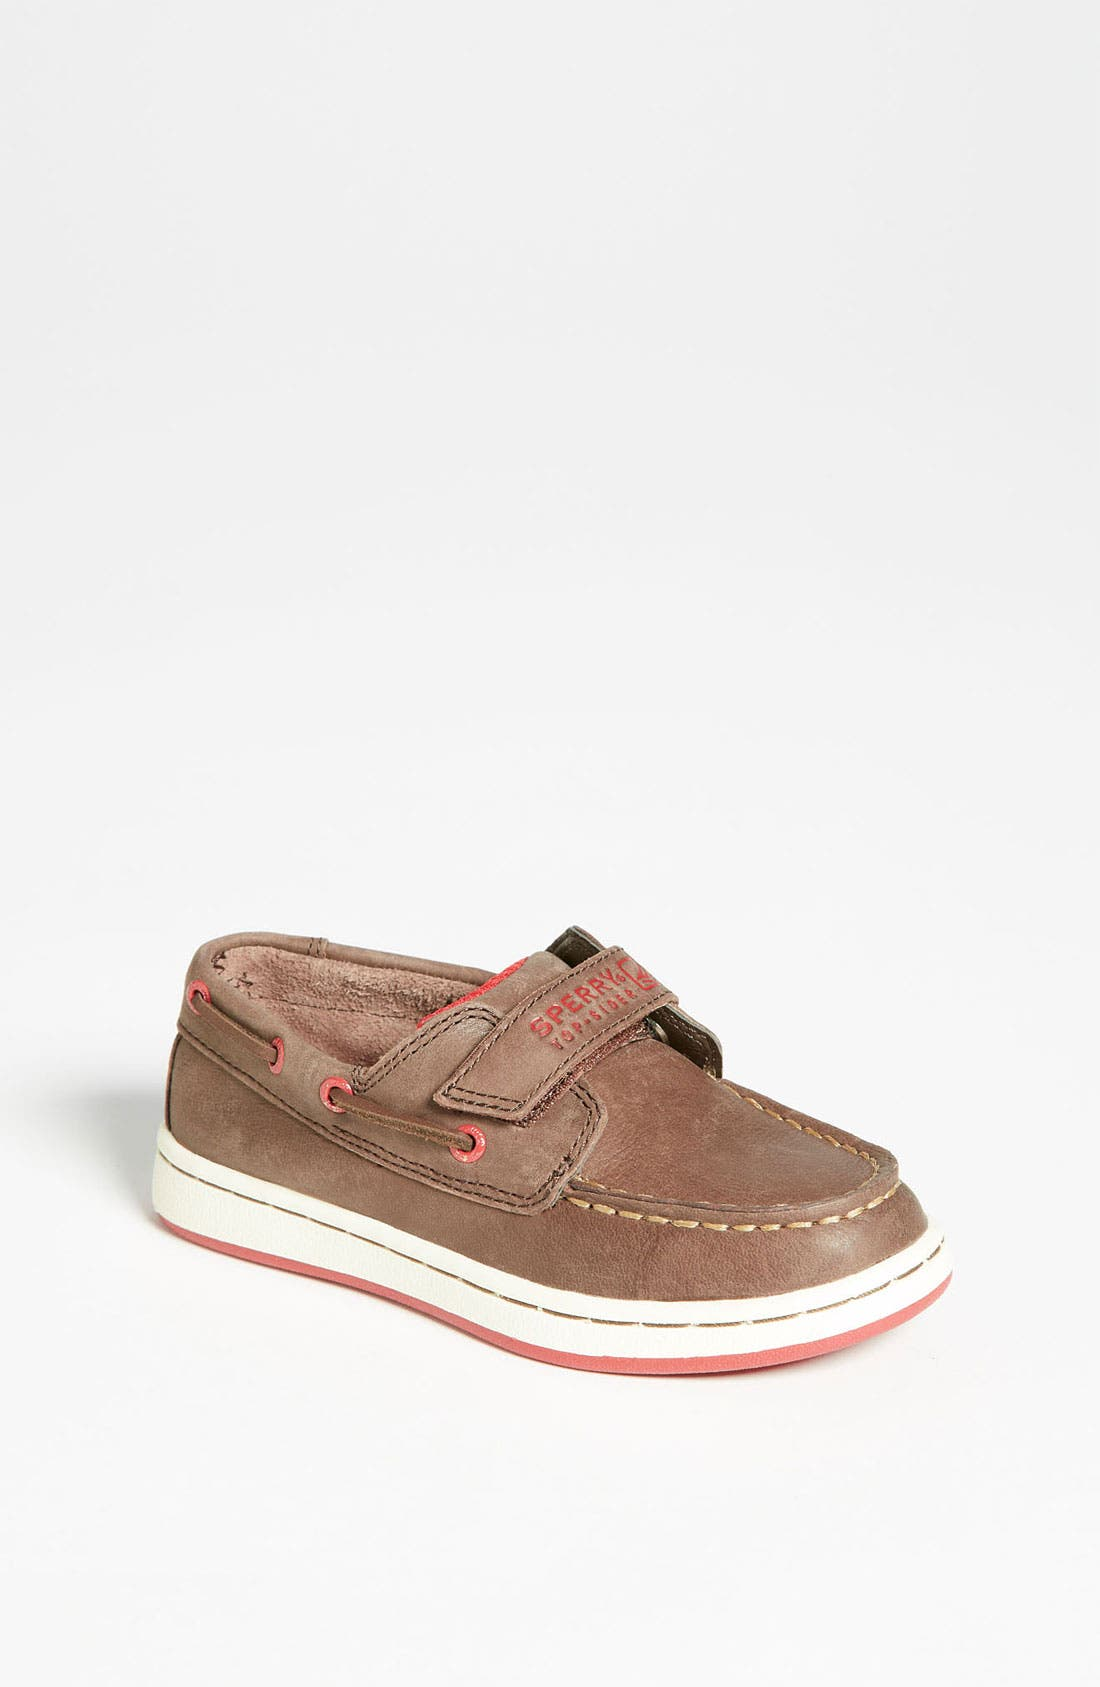 Alternate Image 1 Selected - Sperry Top-Sider® Kids 'Authentic Original' Slip-On (Toddler) (Online Only)